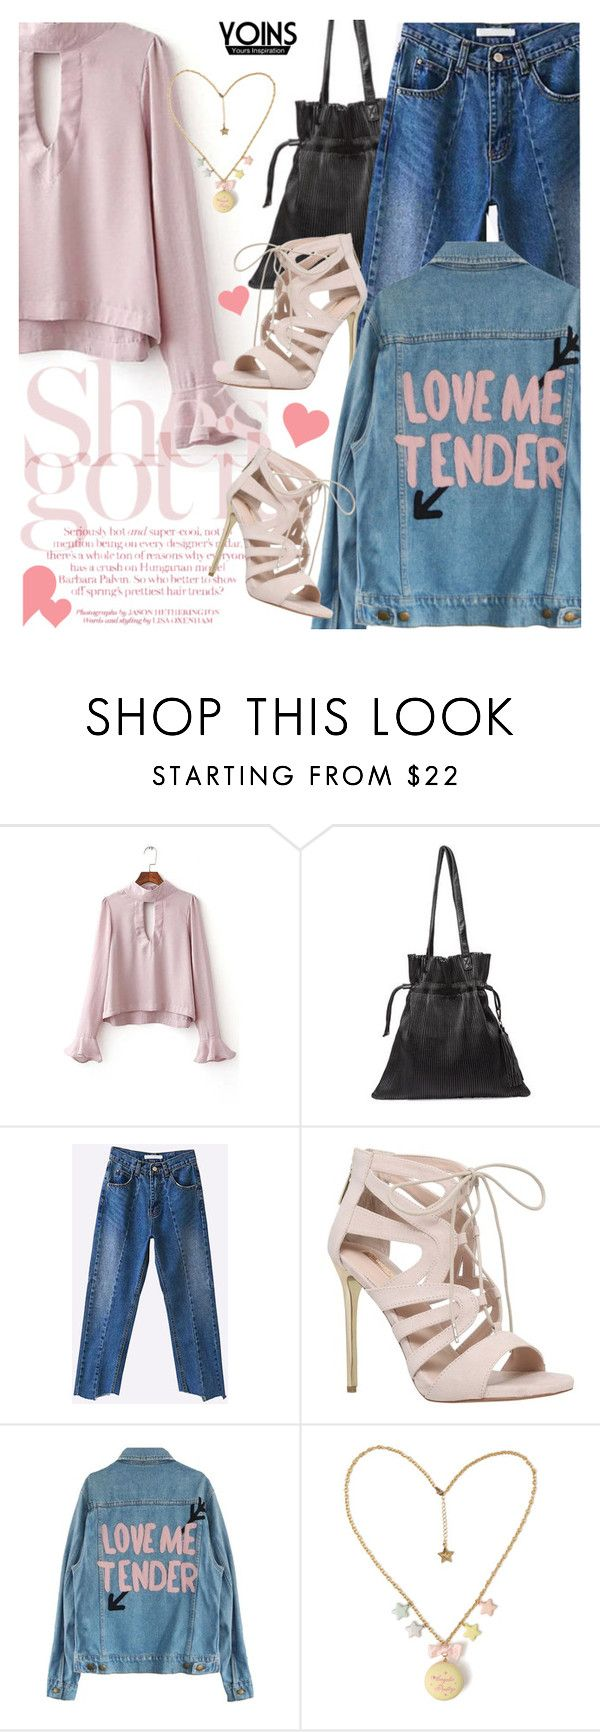 """""""Yoins 24: love me tender"""" by bugatti-veyron ❤ liked on Polyvore featuring Carvela, yoins, yoinscollection and loveyoins"""